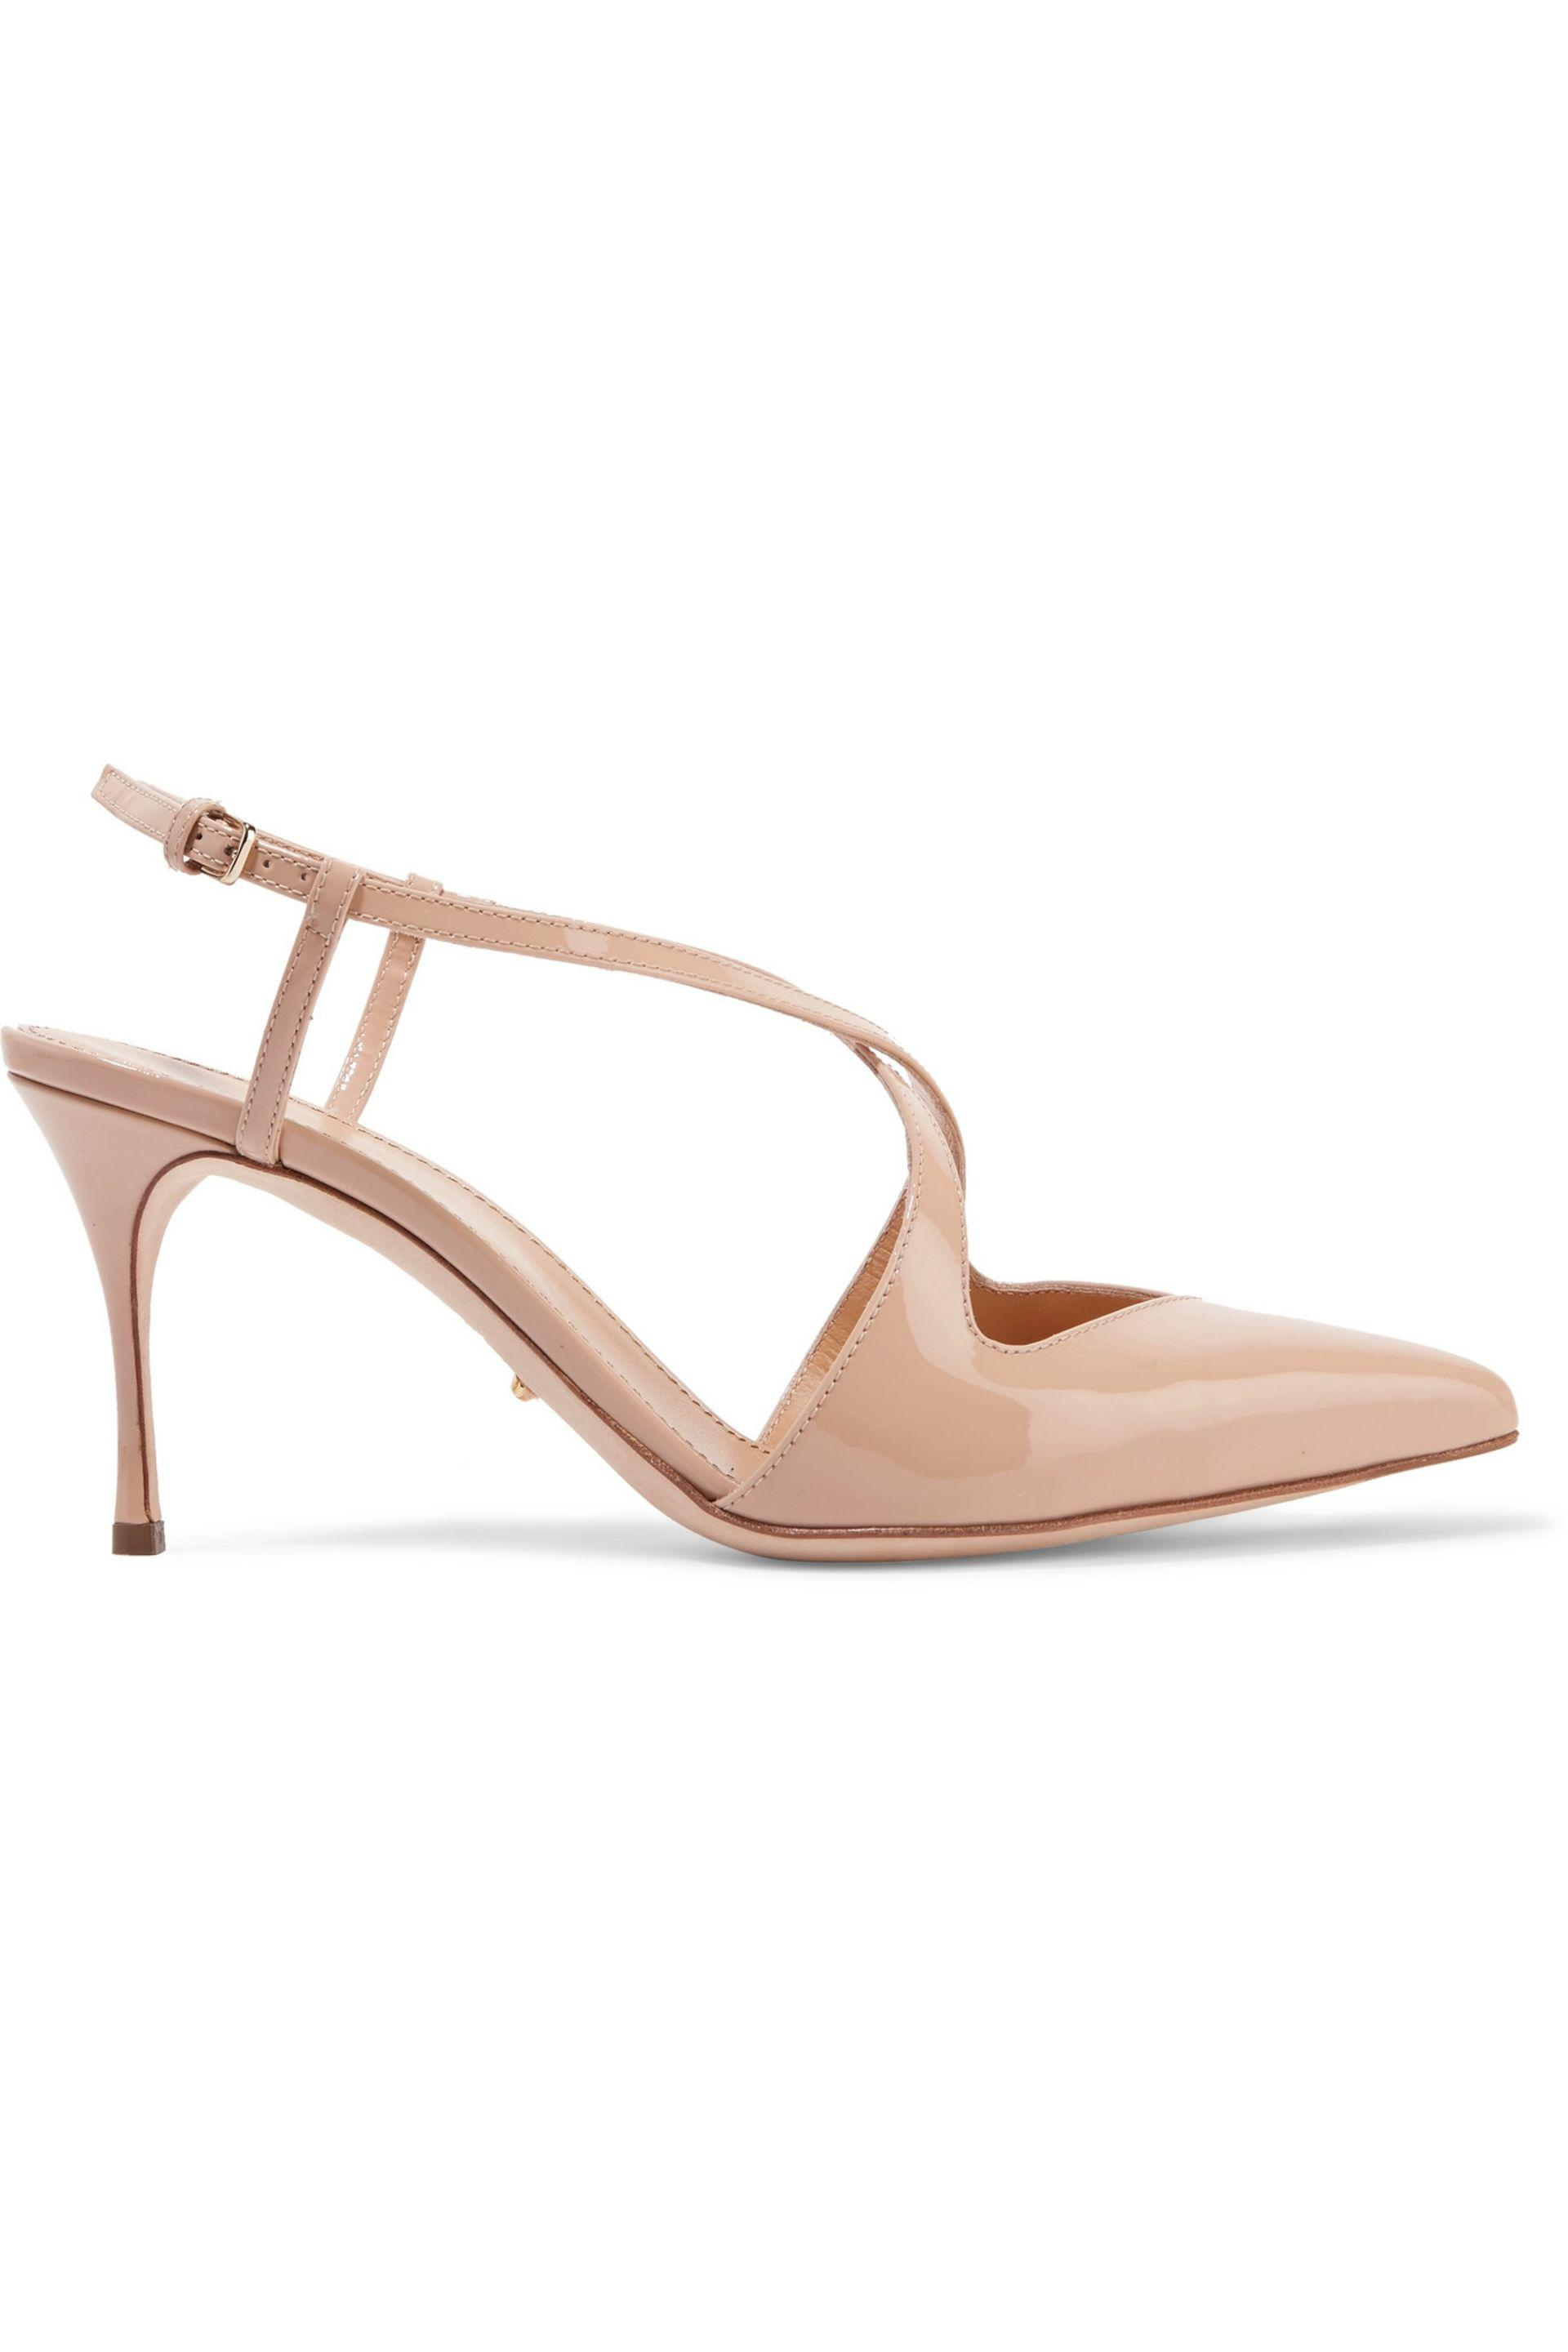 4da2d6c4ba01 lyst – sergio rossi vernice patent-leather pumps in natural. Download Image  1920 X 2880